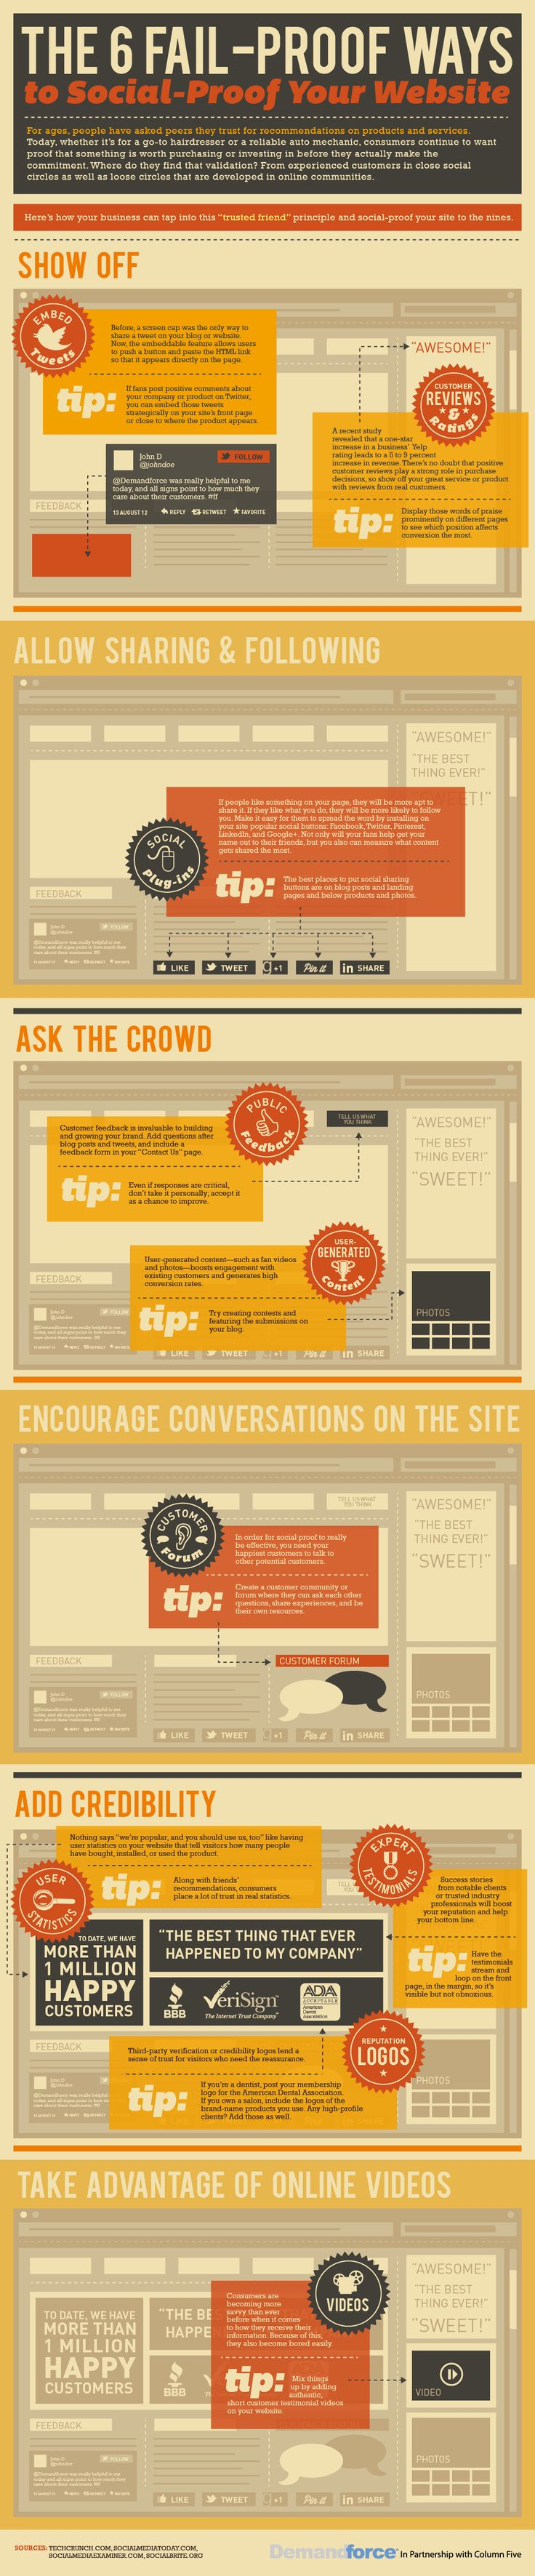 Tips To Social Proof Your Website : Build Your Brand Credibility